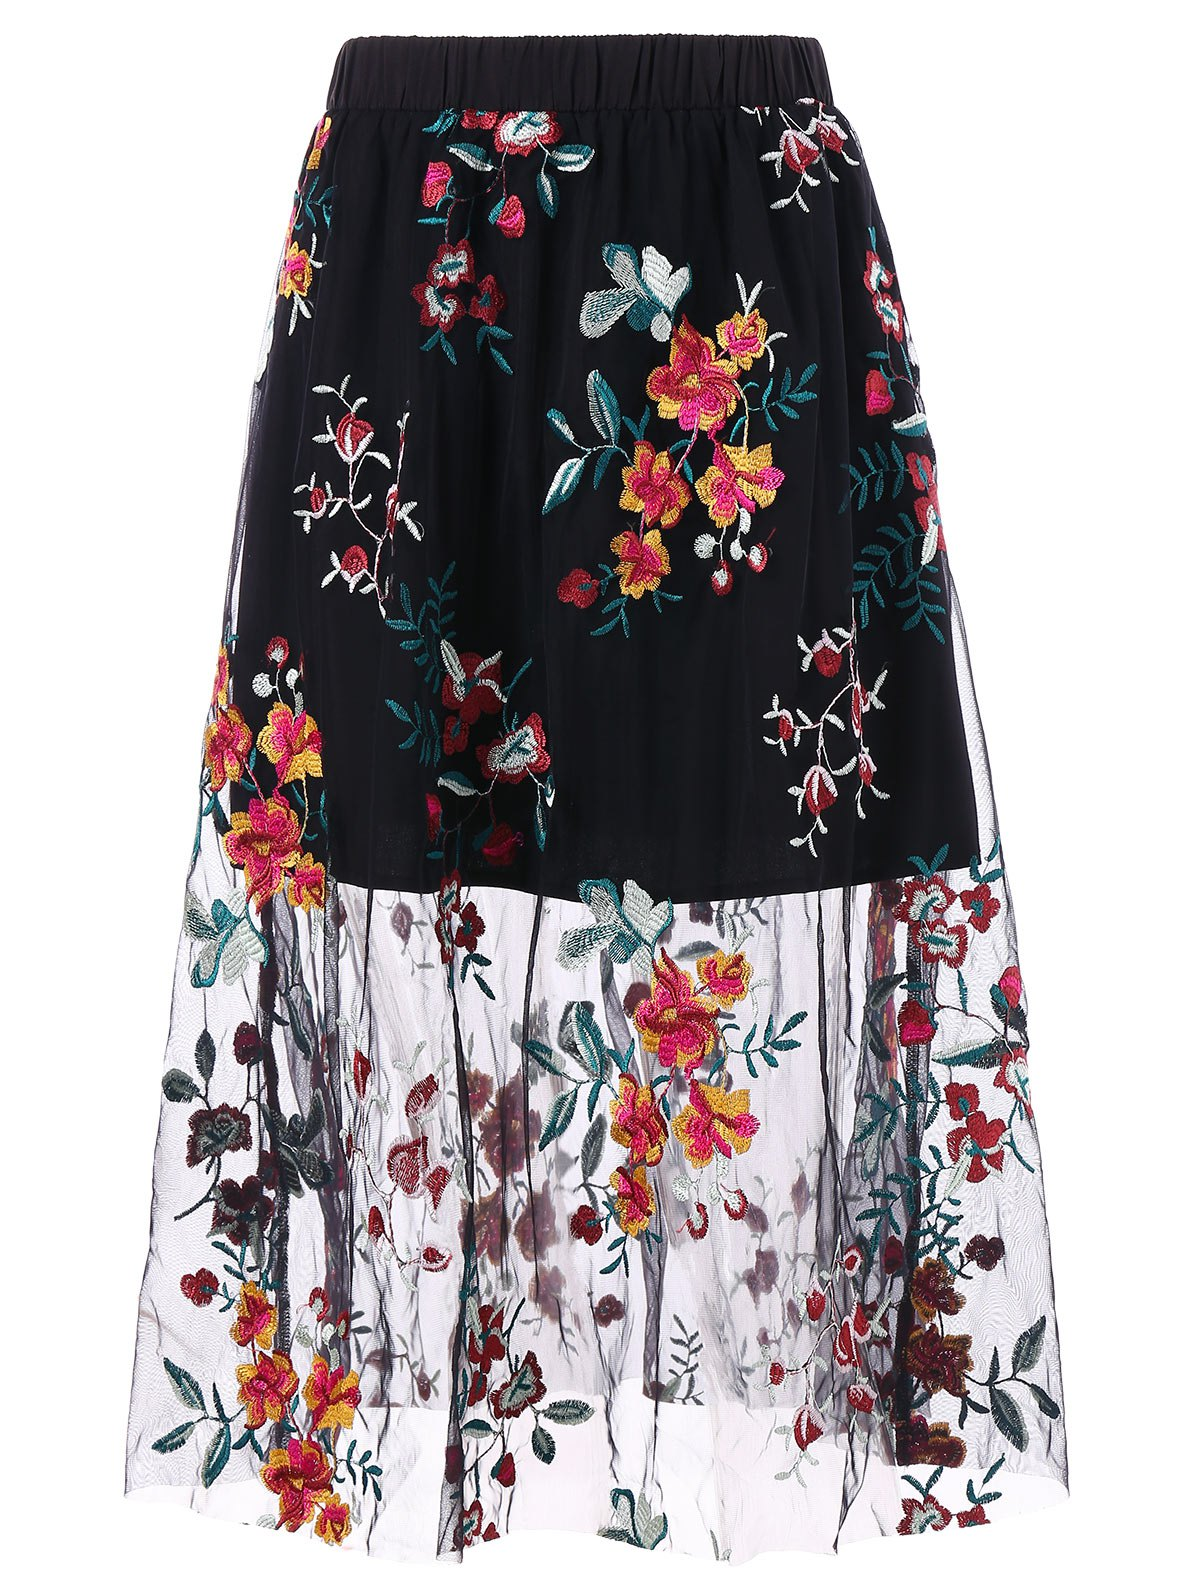 Shop High Waisted Floral Embroidery Mesh Midi Skirt